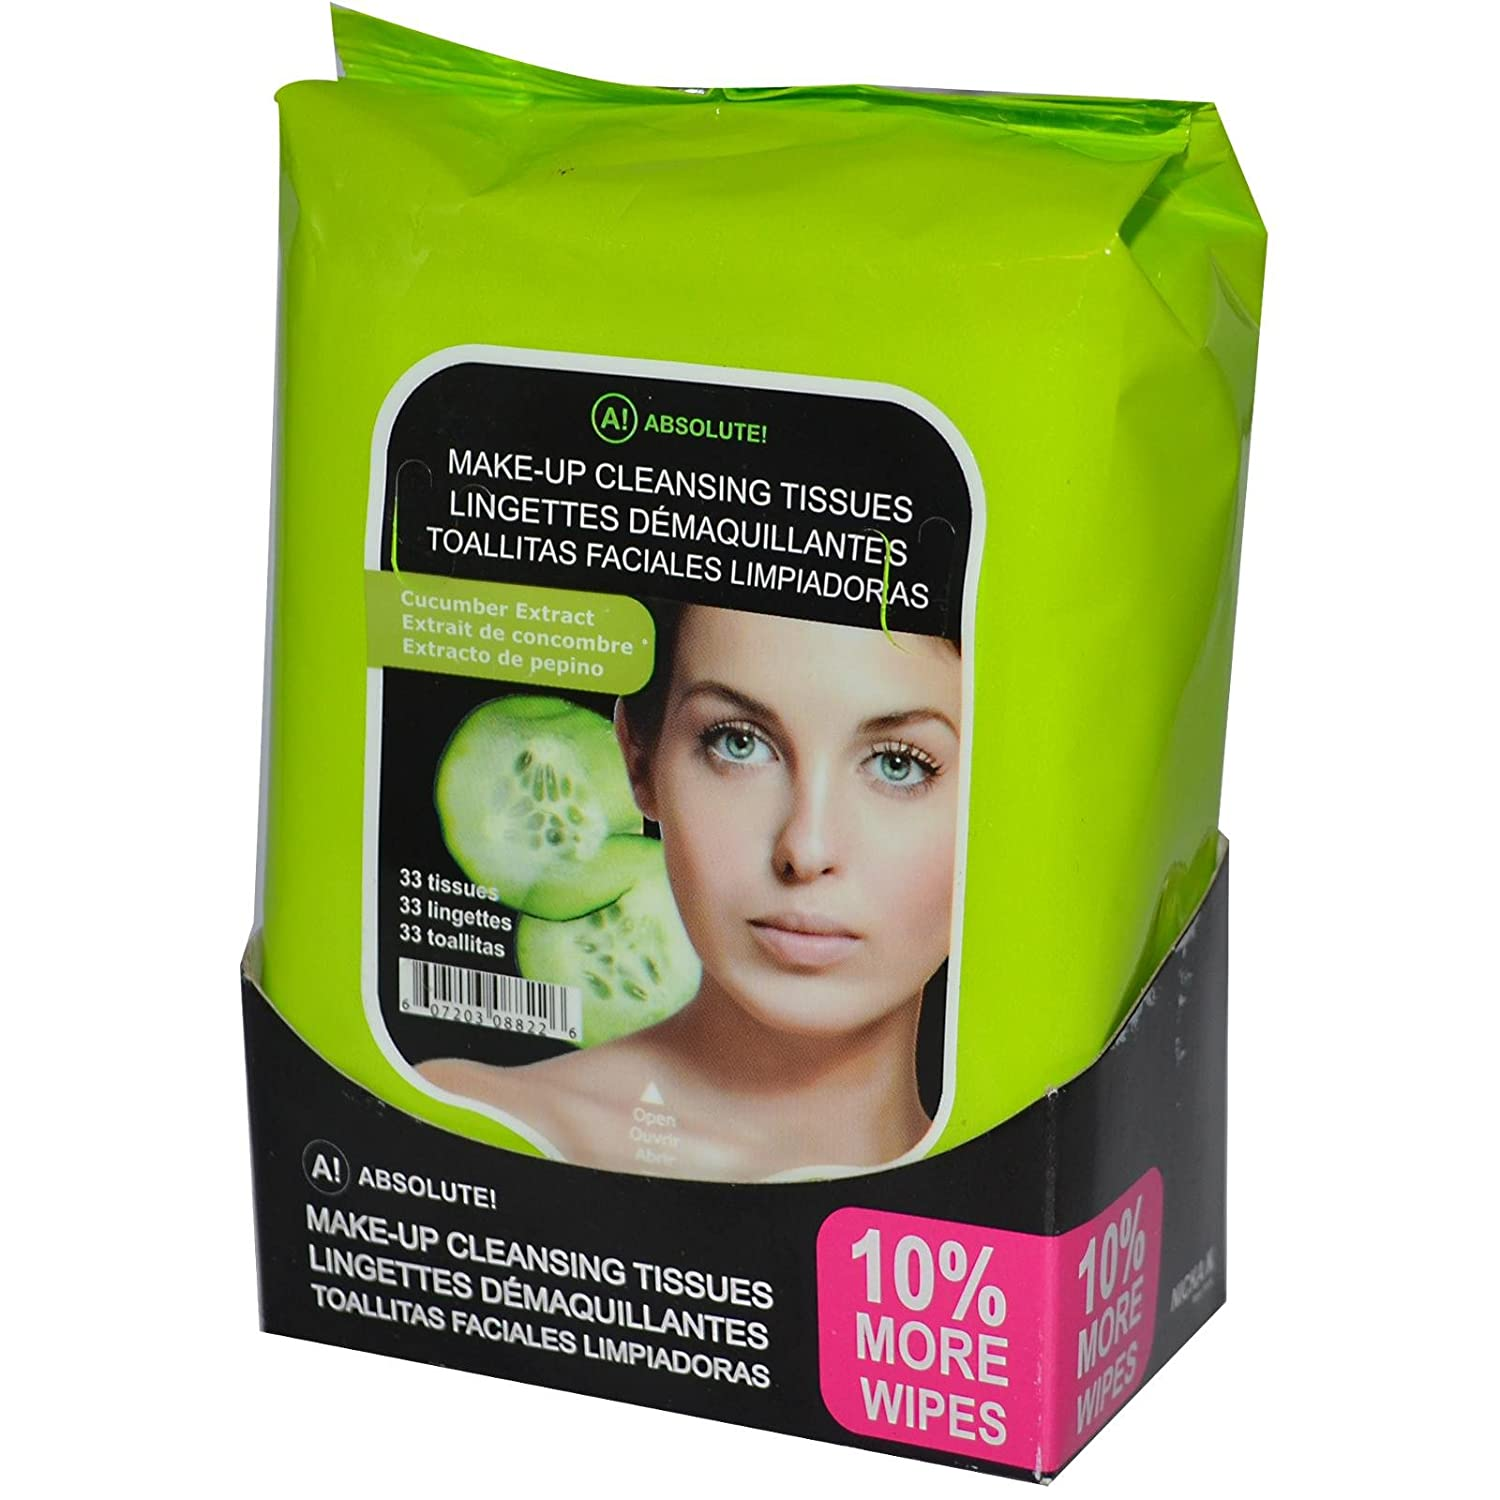 Absolute New York Make-Up Cleansing Tissue, Green Tea, 60 Ct Stages of Beauty Harmony Facial Scrub, Anti-Aging Formula for Effective Exfoliation, 60 mL